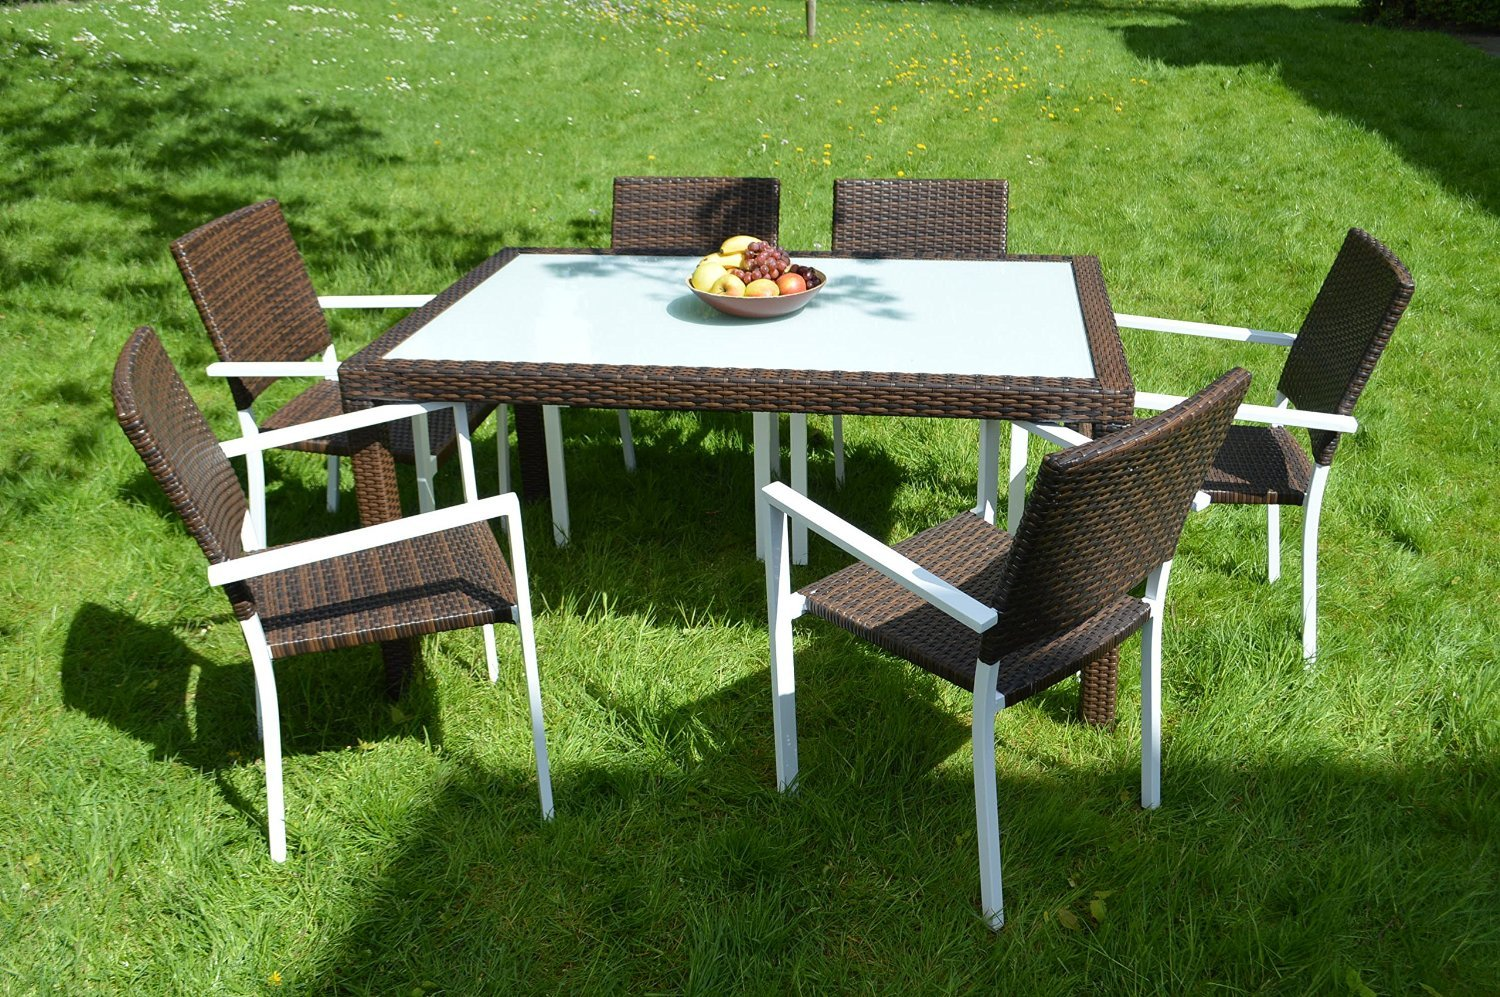 gartenm bel essgruppe rattan dinning set in aluminium rostfrei tisch 6 st hle g nstig bestellen. Black Bedroom Furniture Sets. Home Design Ideas